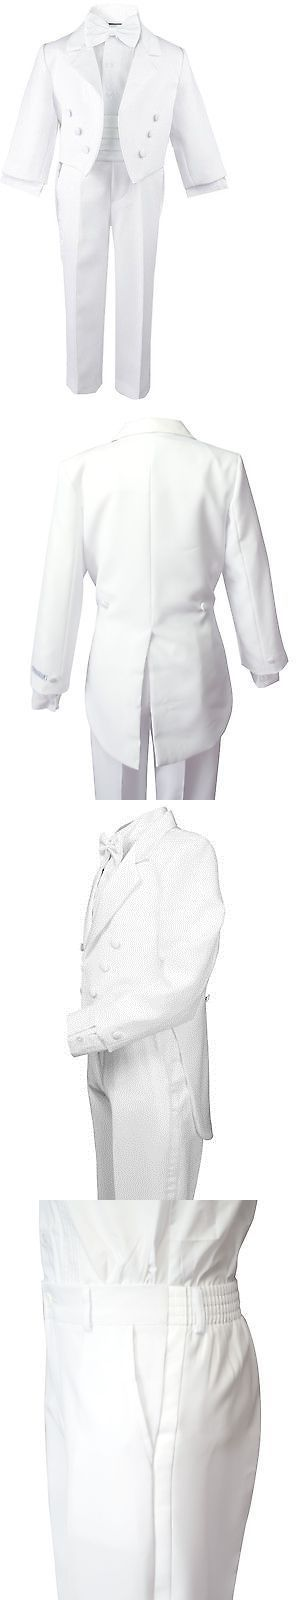 Awesome Prom Dress Suits 99754: White Formal Boy Tuxedo Kids Dress Suit Set Tuxedo With Tail All Si... Check more at http://24store.ml/fashion/prom-dress-suits-99754-white-formal-boy-tuxedo-kids-dress-suit-set-tuxedo-with-tail-all-si/